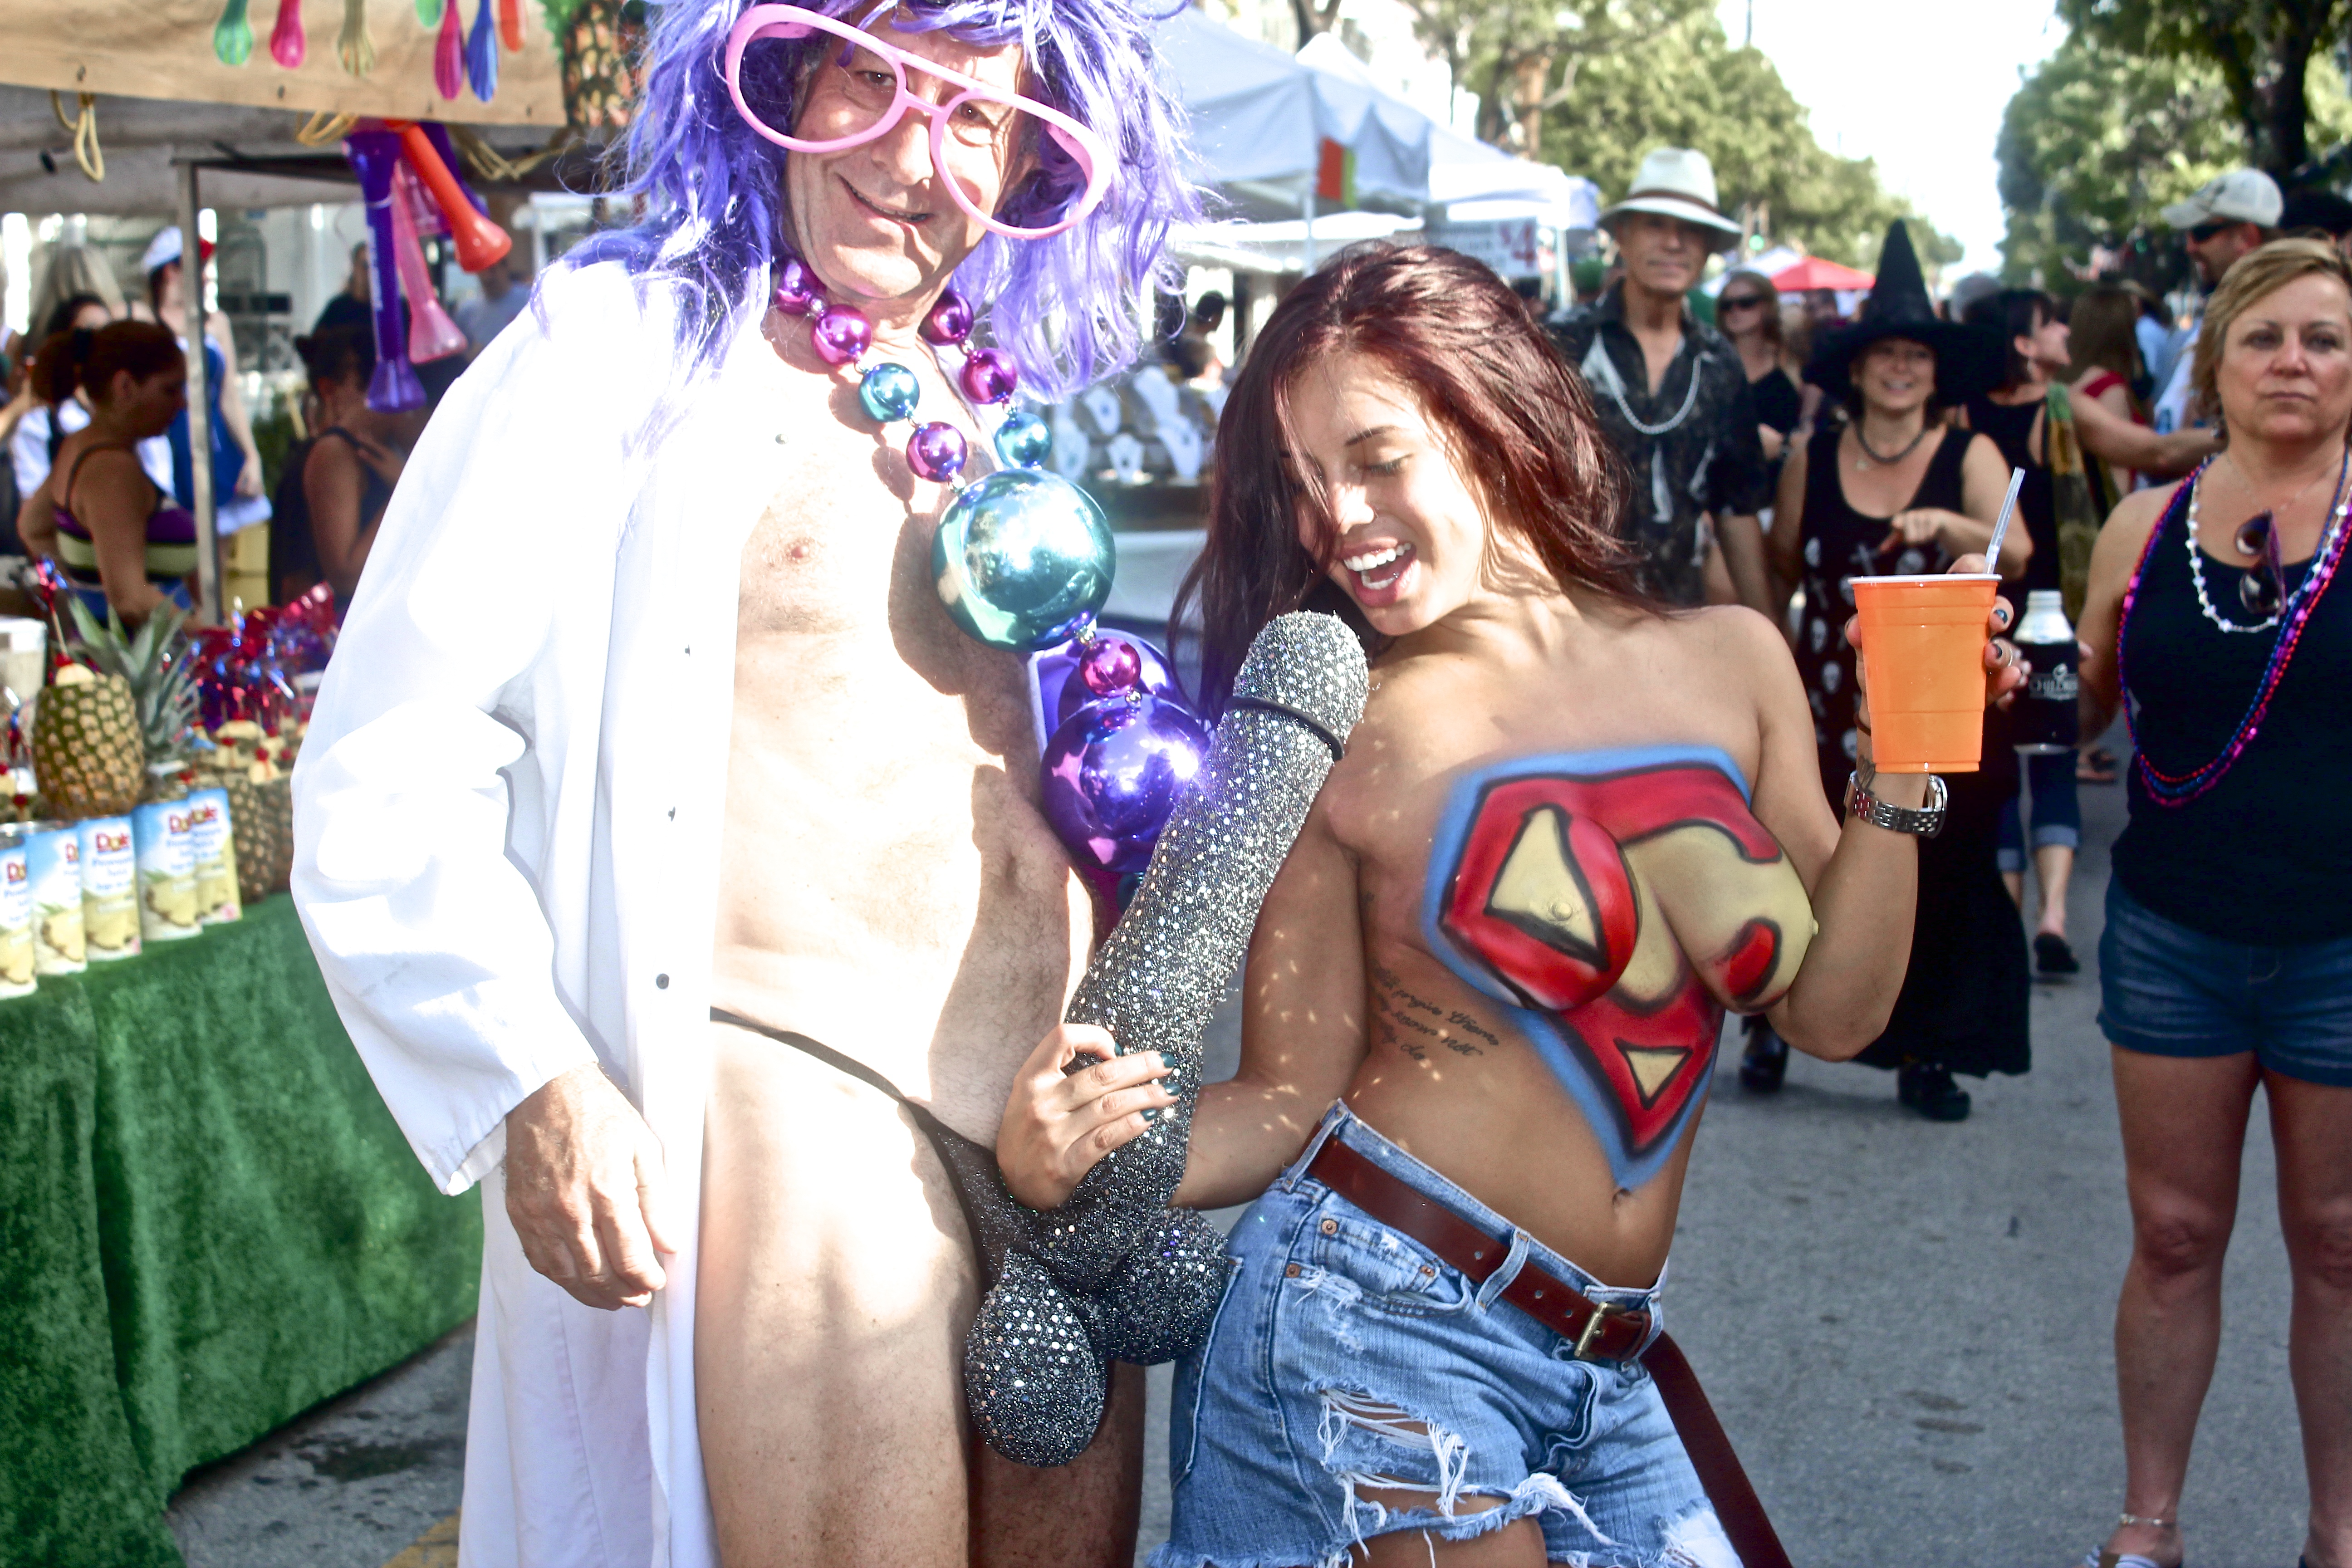 Fantasy fest pussy photos nsfw pictures